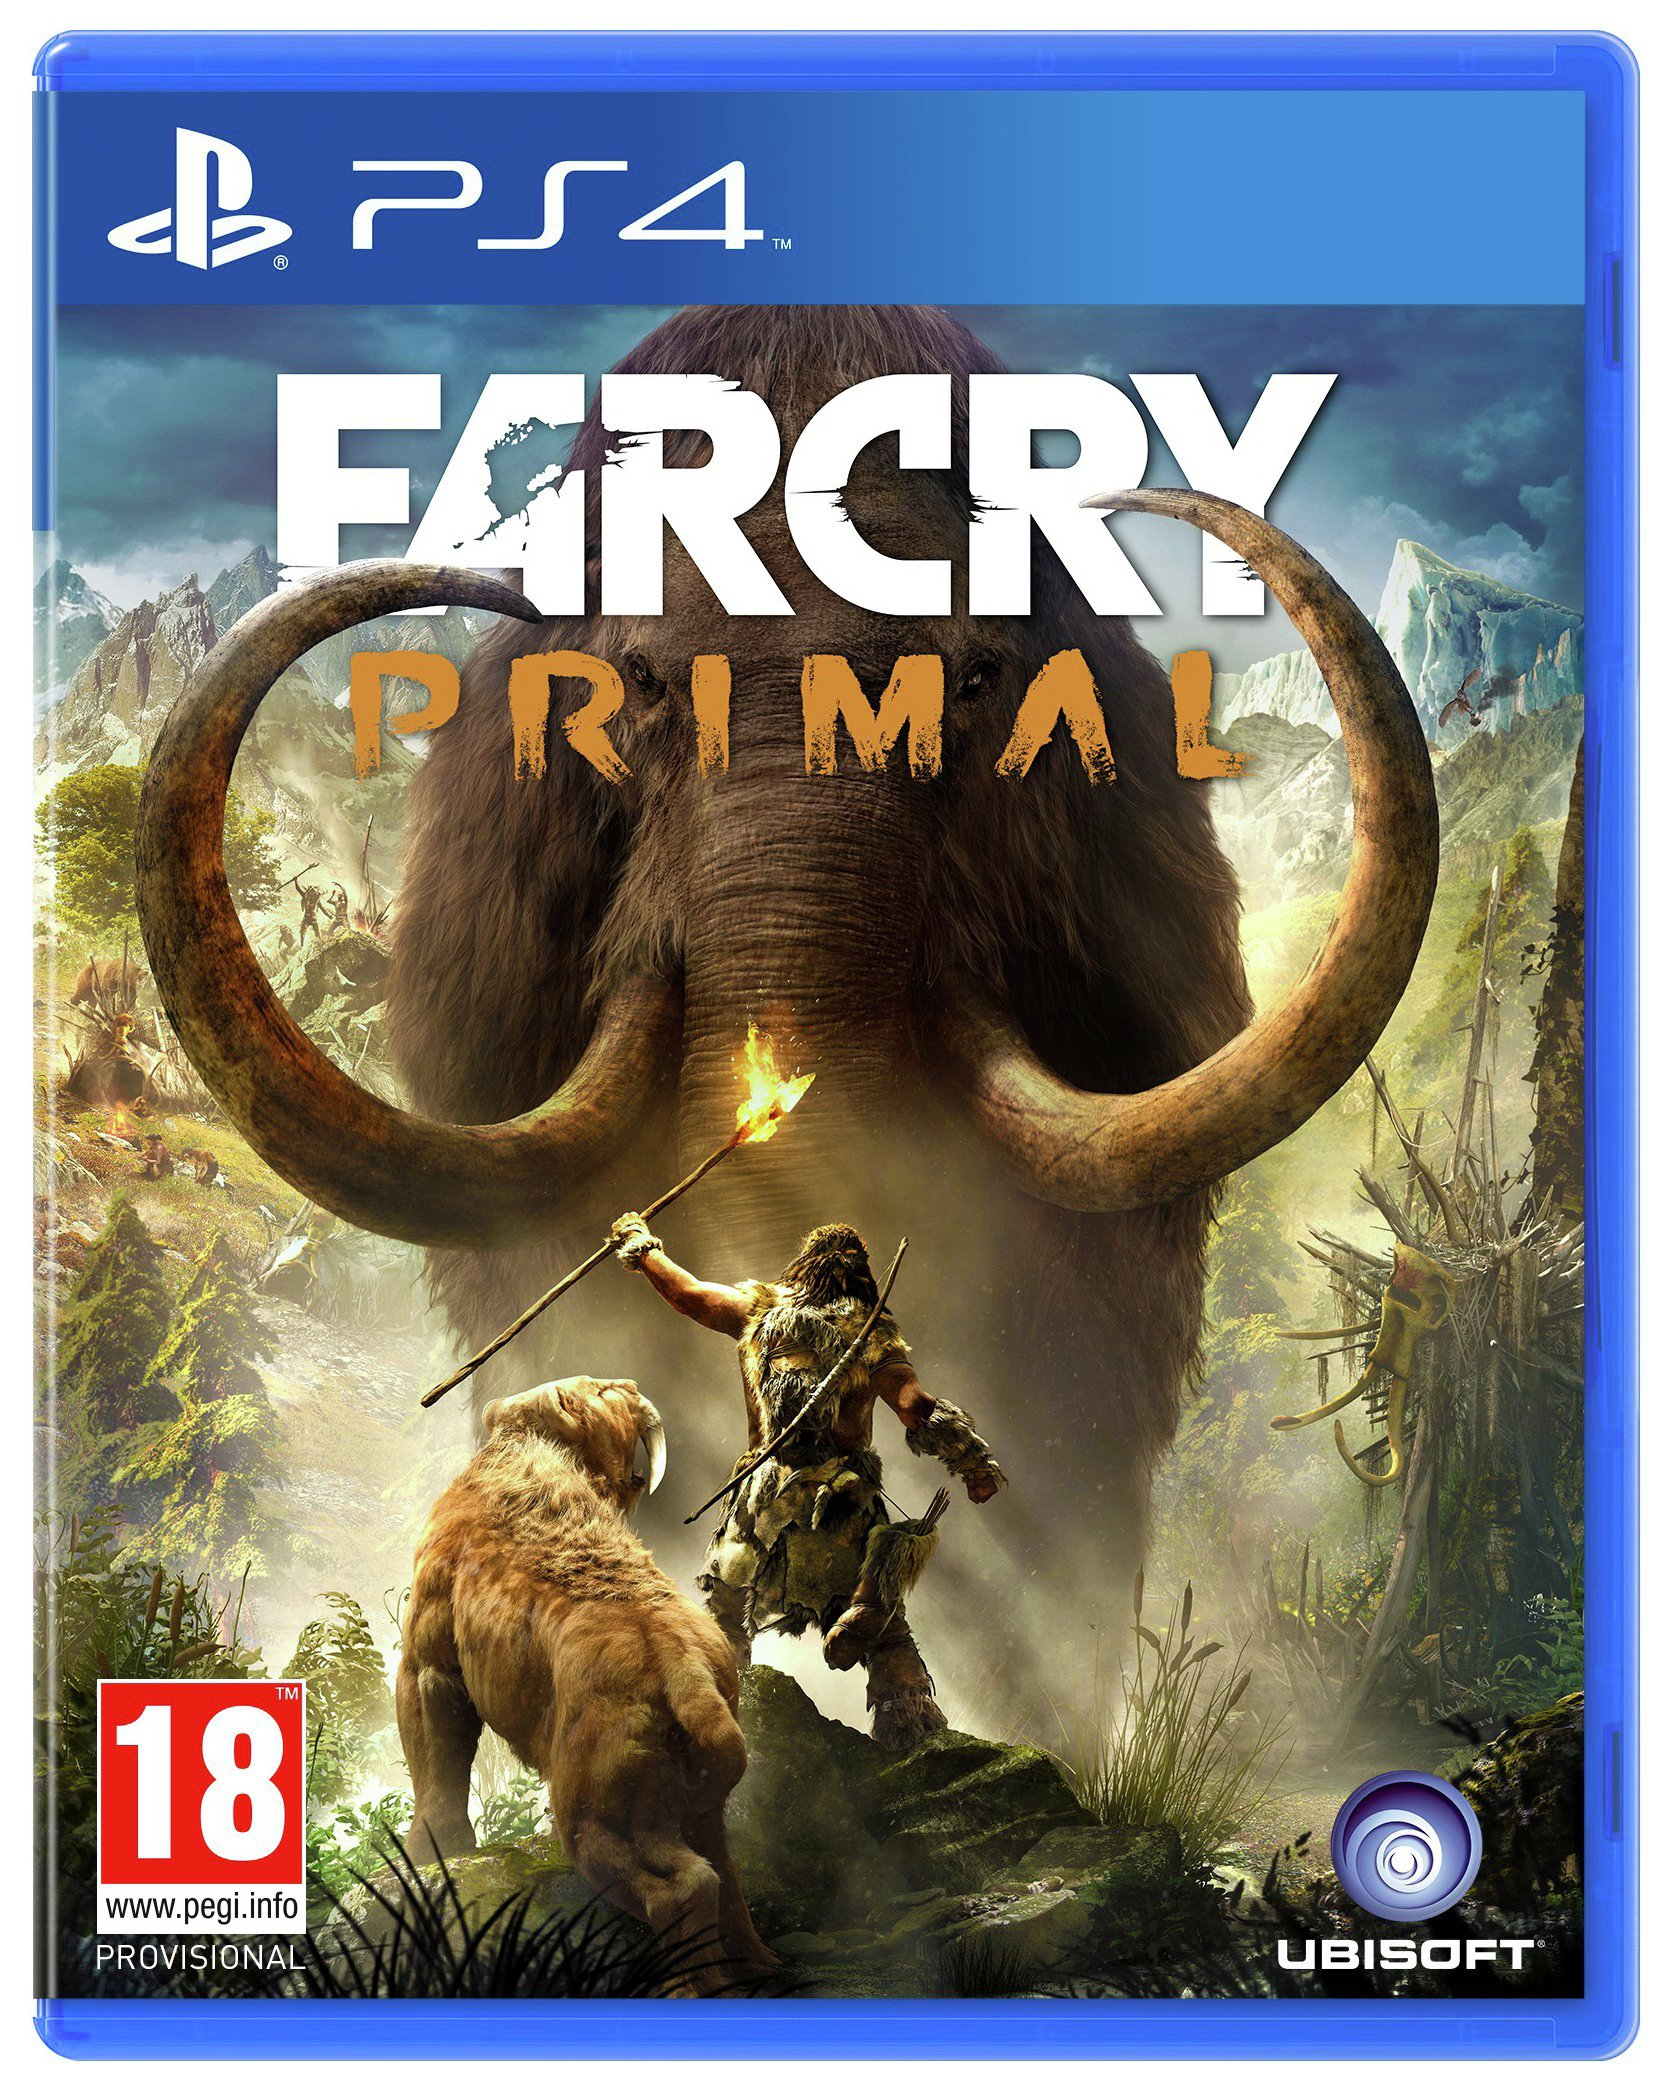 Image of Far Cry - Primal - PS4 Game.